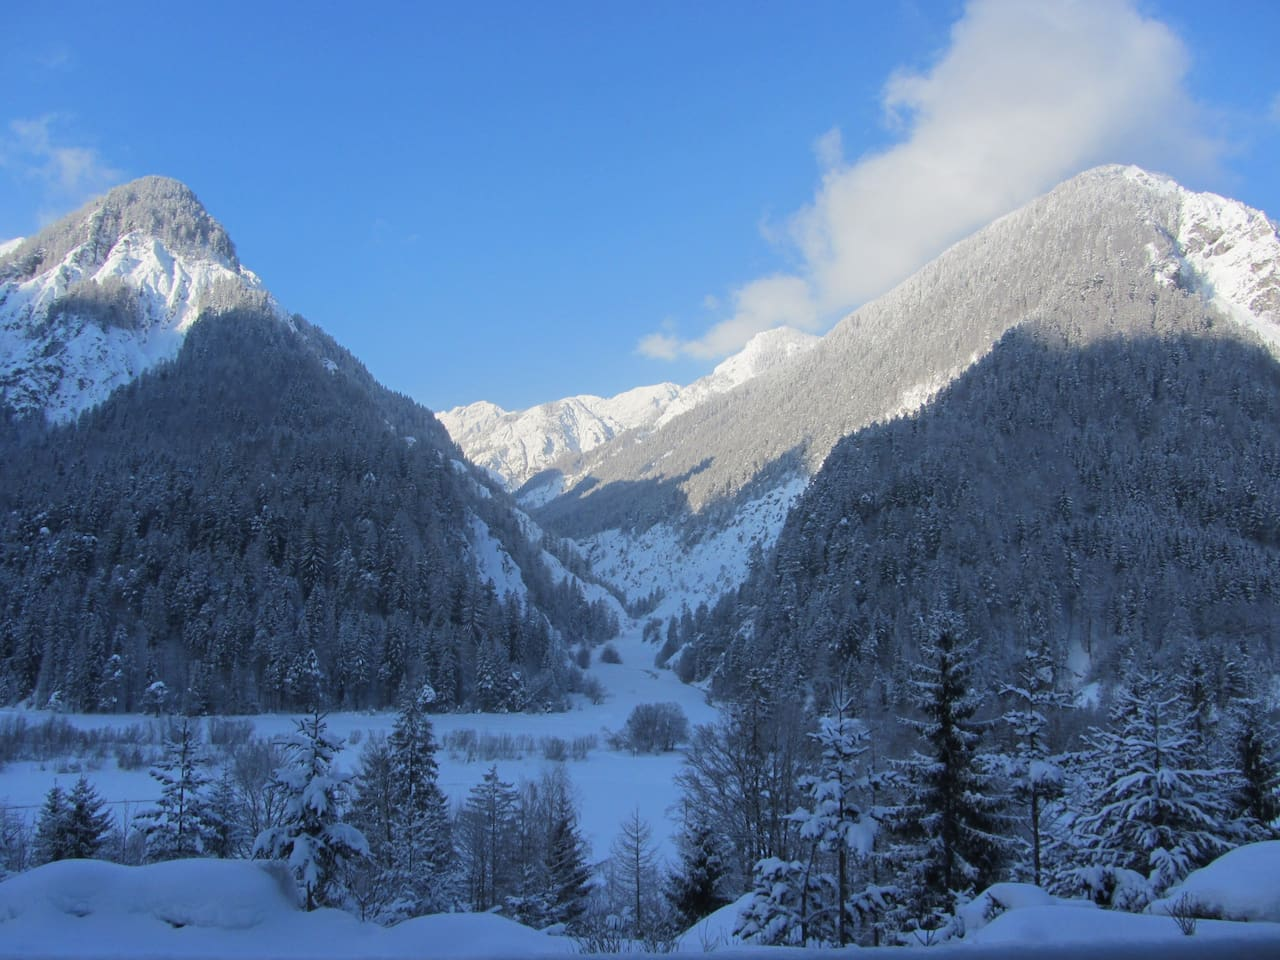 The breathtaking view from the house in the winter.